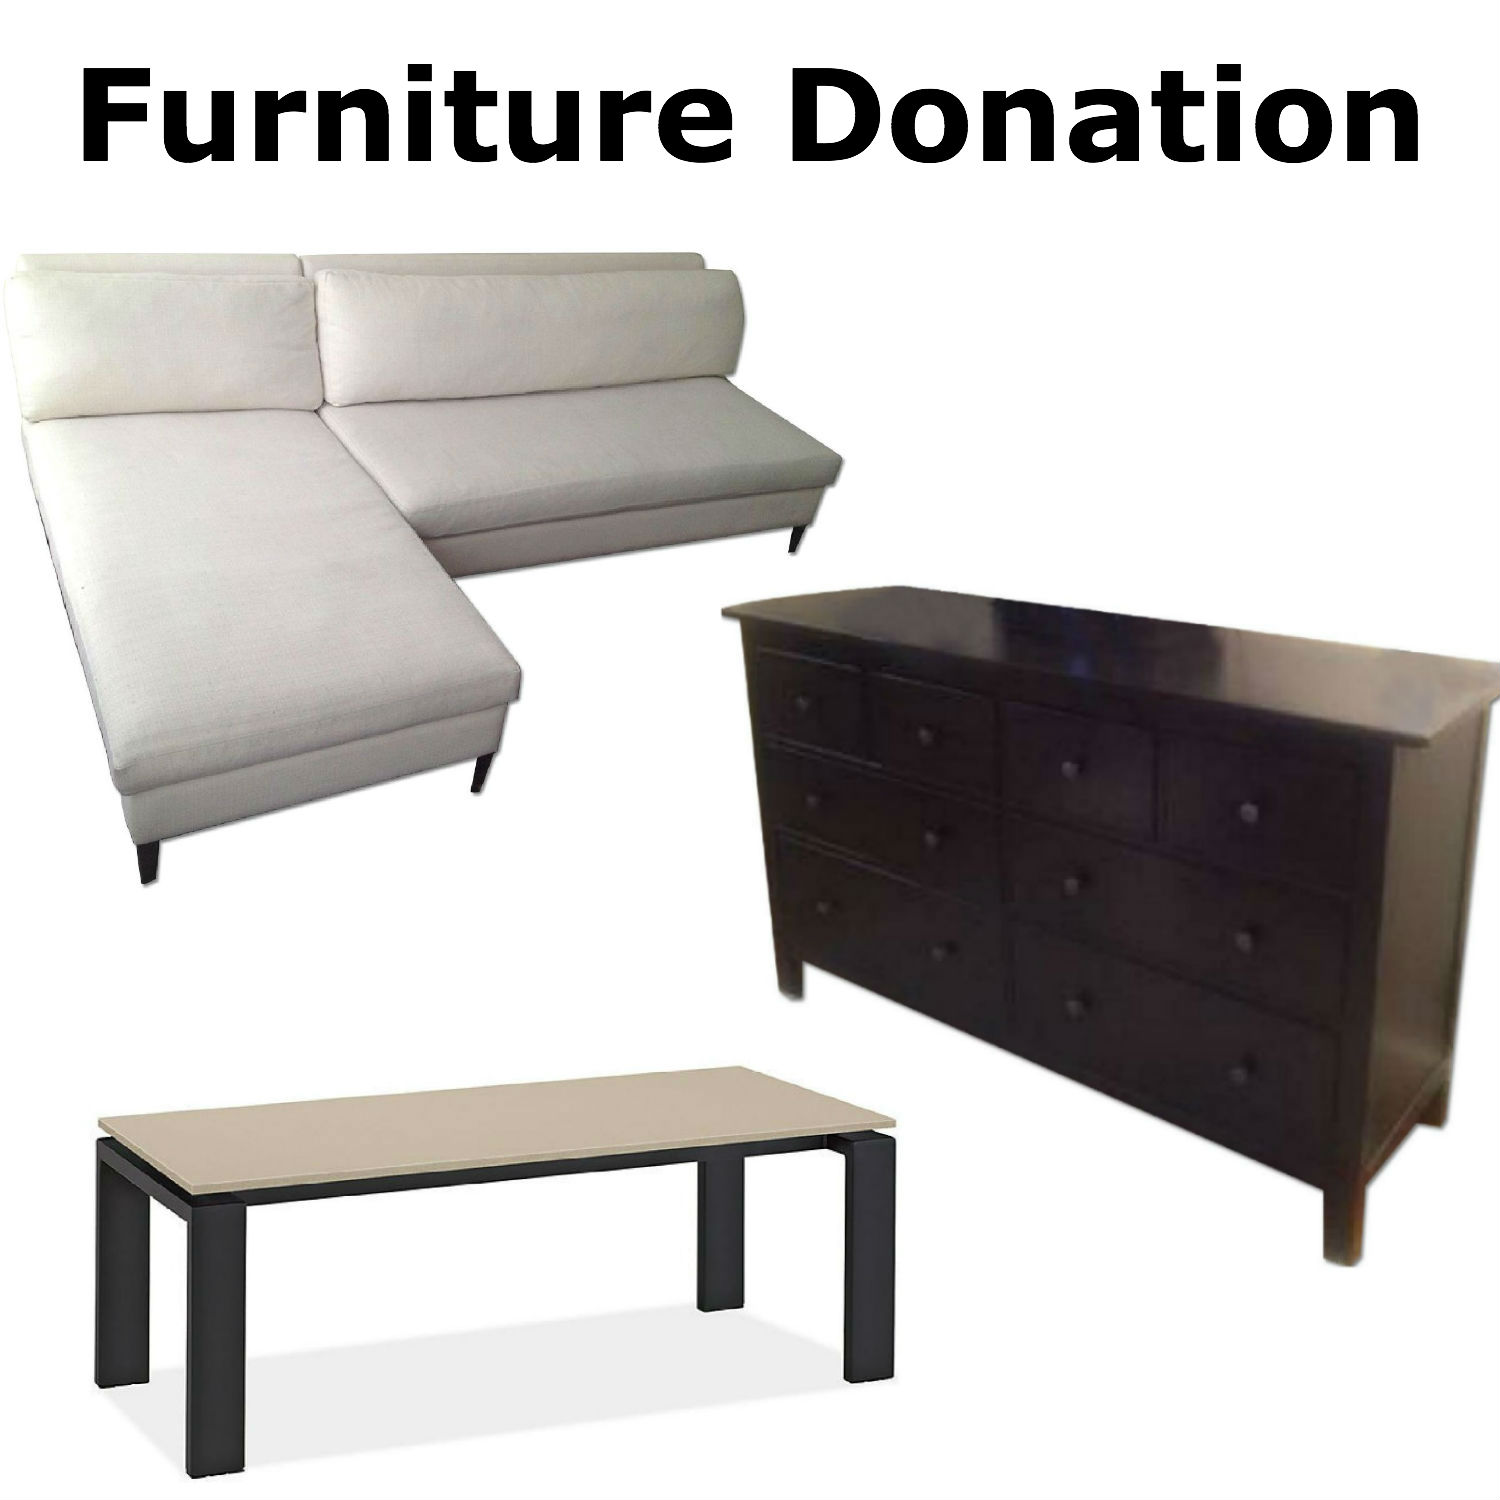 Donating Used Furniture In Nyc At Home With Aptdeco